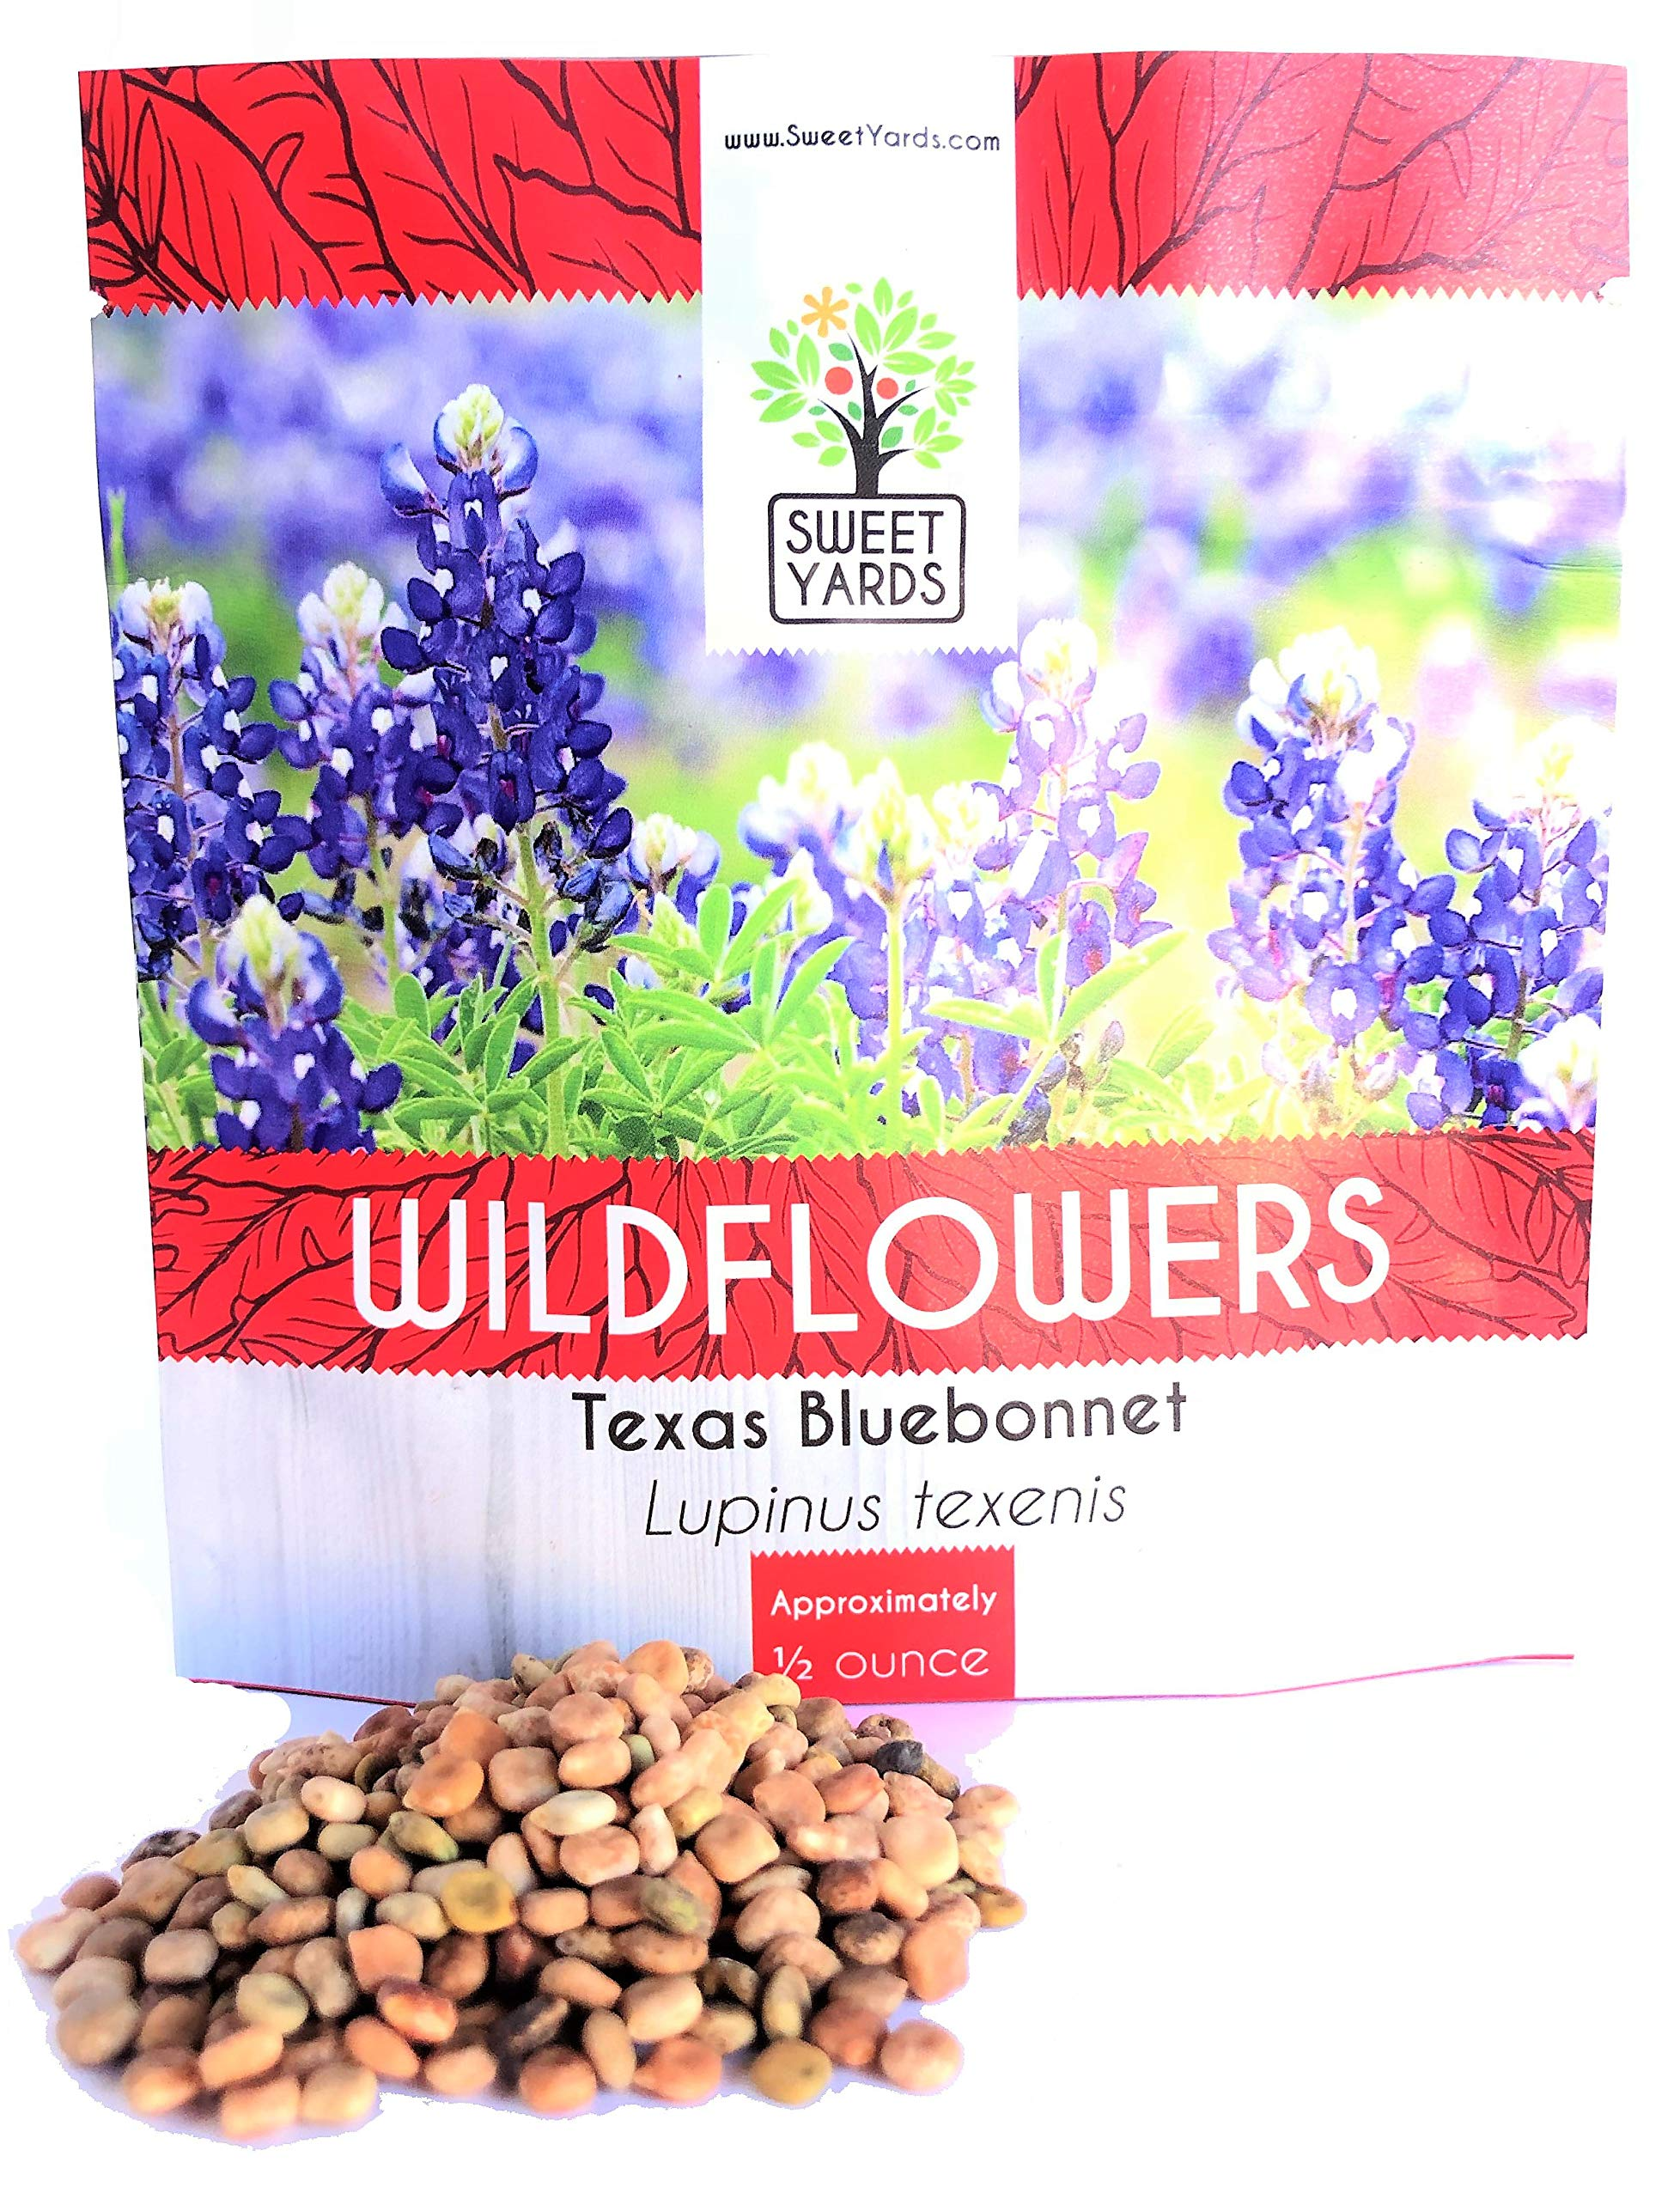 Texas Bluebonnet Wildflower Seeds - Bulk 1/2 Ounce Packet - Over 500 Native Seeds - Texas State Flower! by Sweet Yards Seed Co.